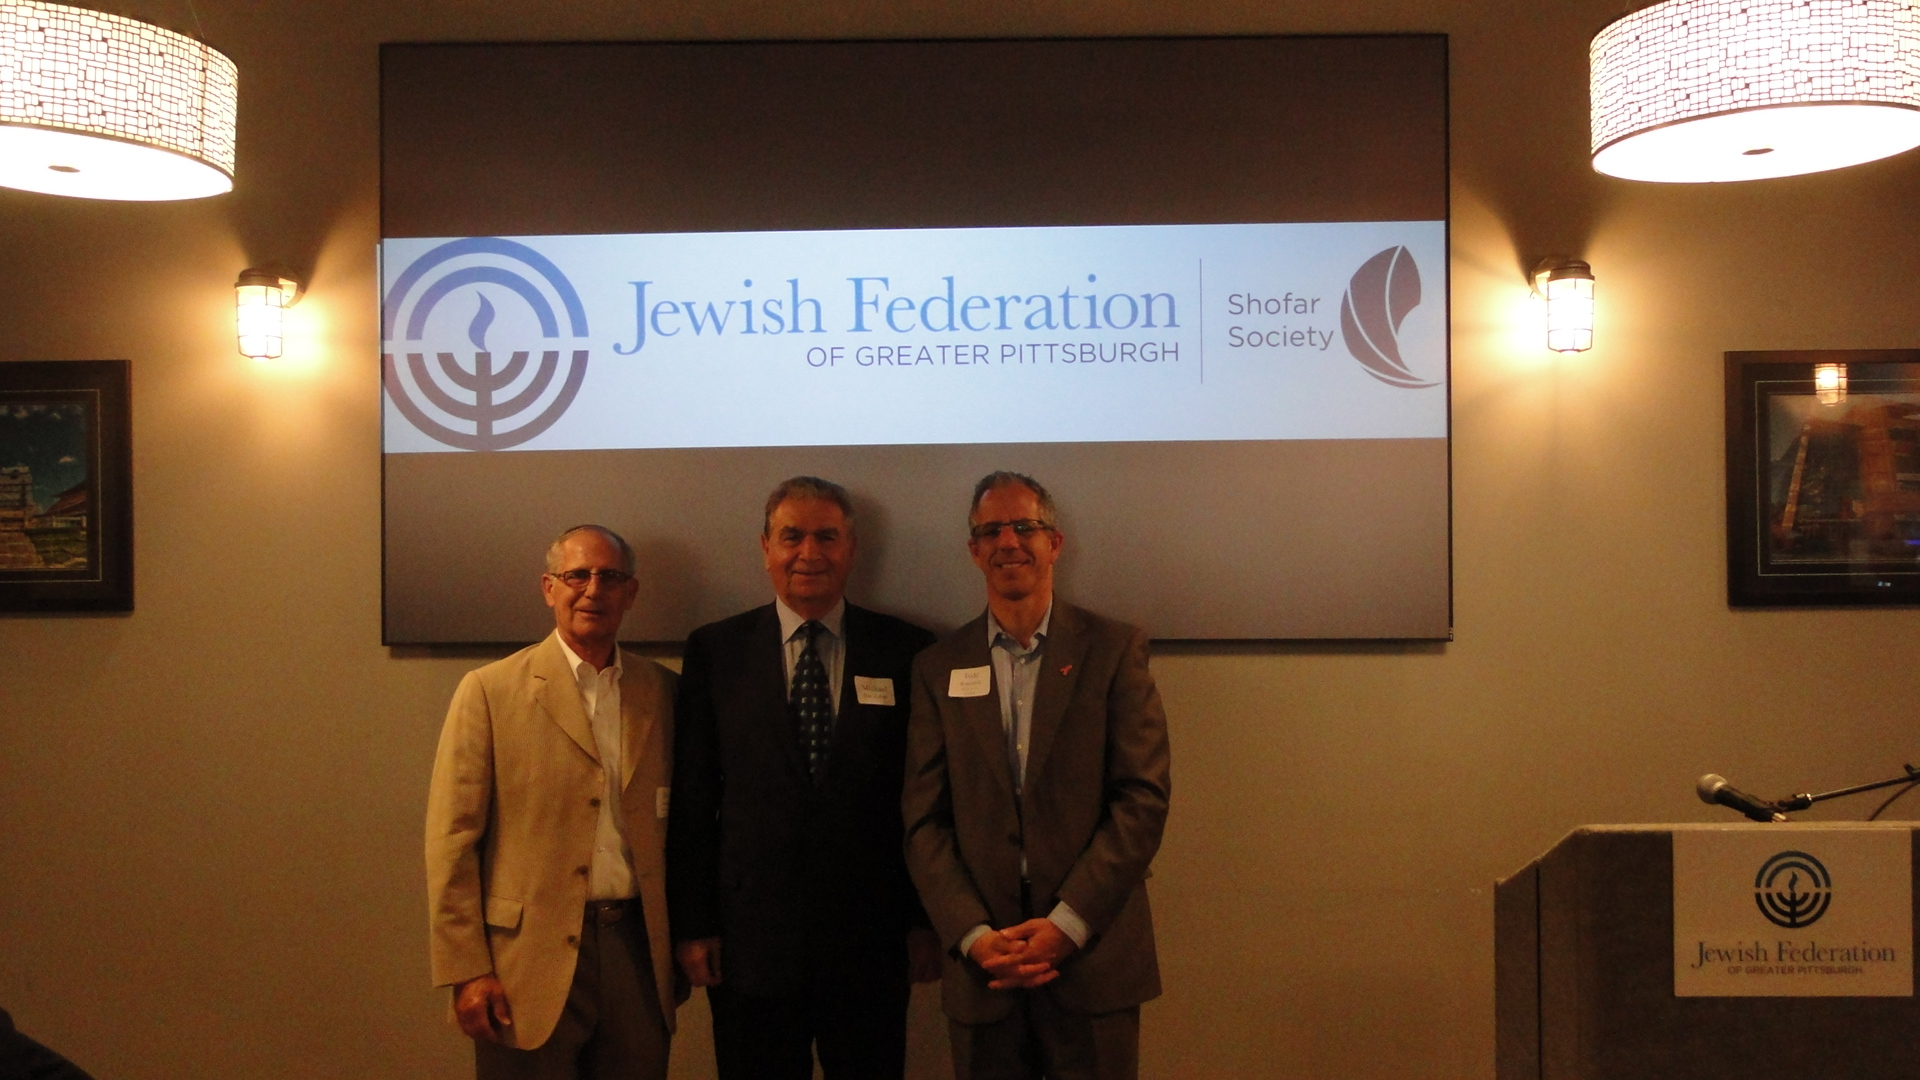 David Steinbach, Shofar Society Chair, with guest speaker Michael Bar-Zohar and Todd Rosenfeld, Shofar Society Co-Chair.